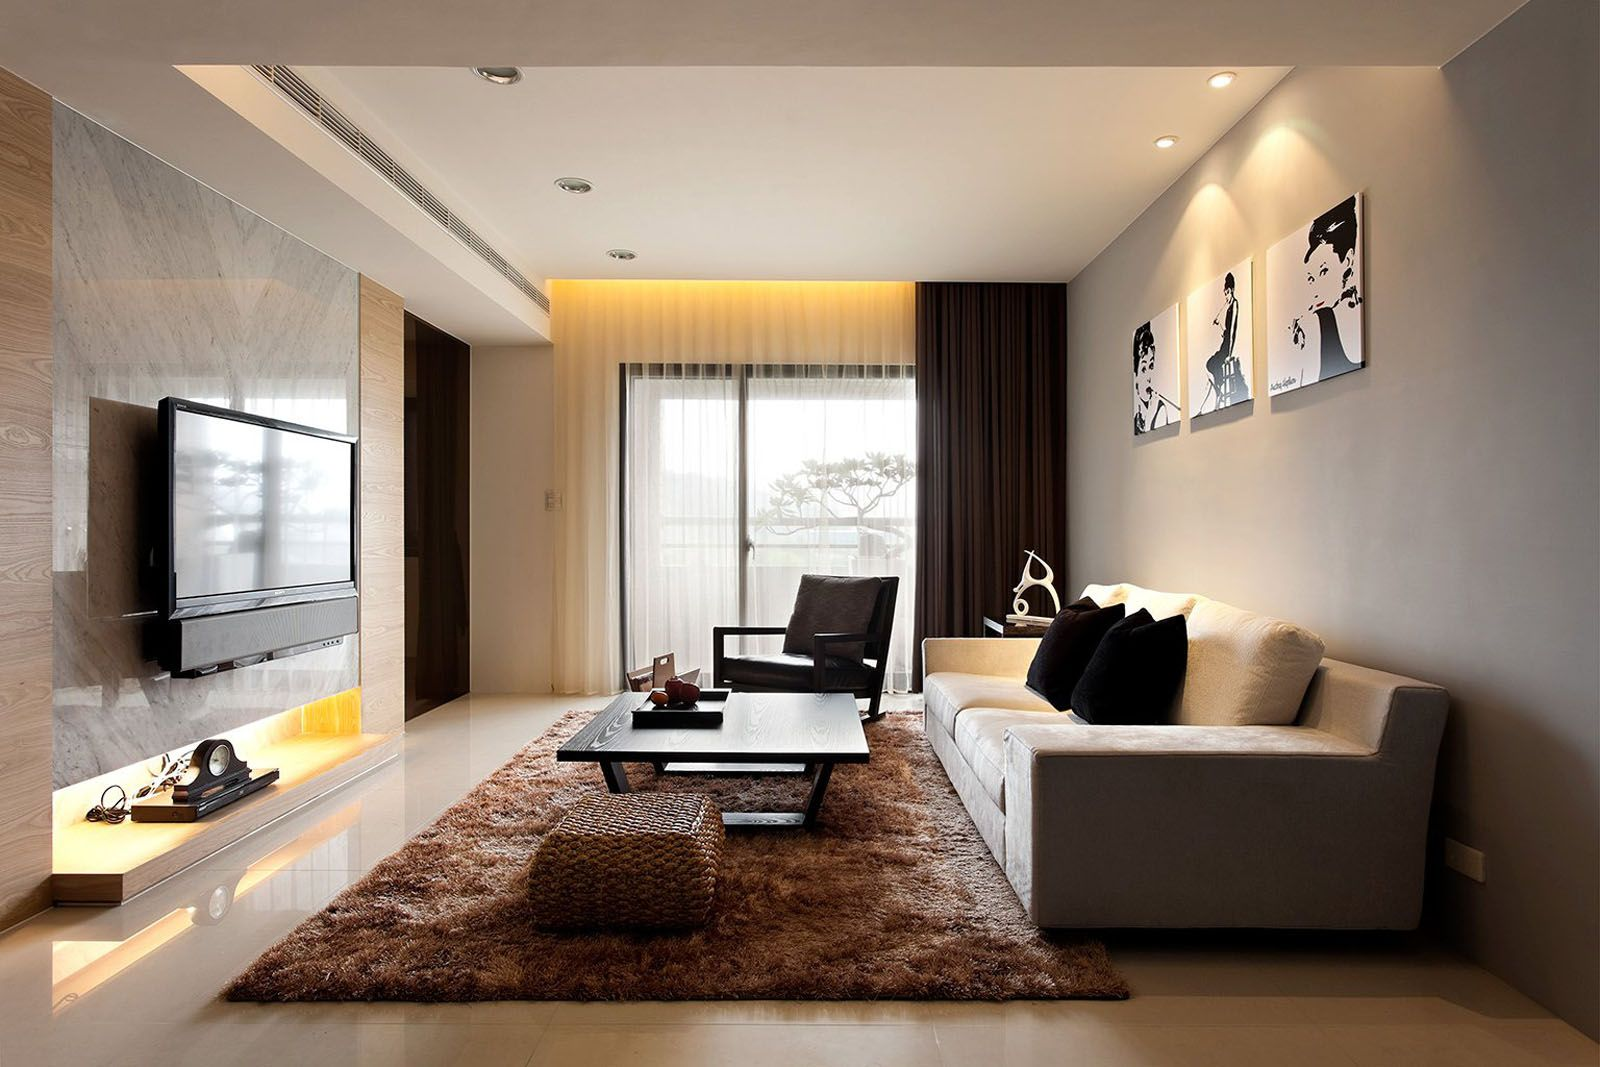 Small Living Room Design Ideas Salas Pequeñas Y Modernas  Decoracion  Pinterest  Small Living